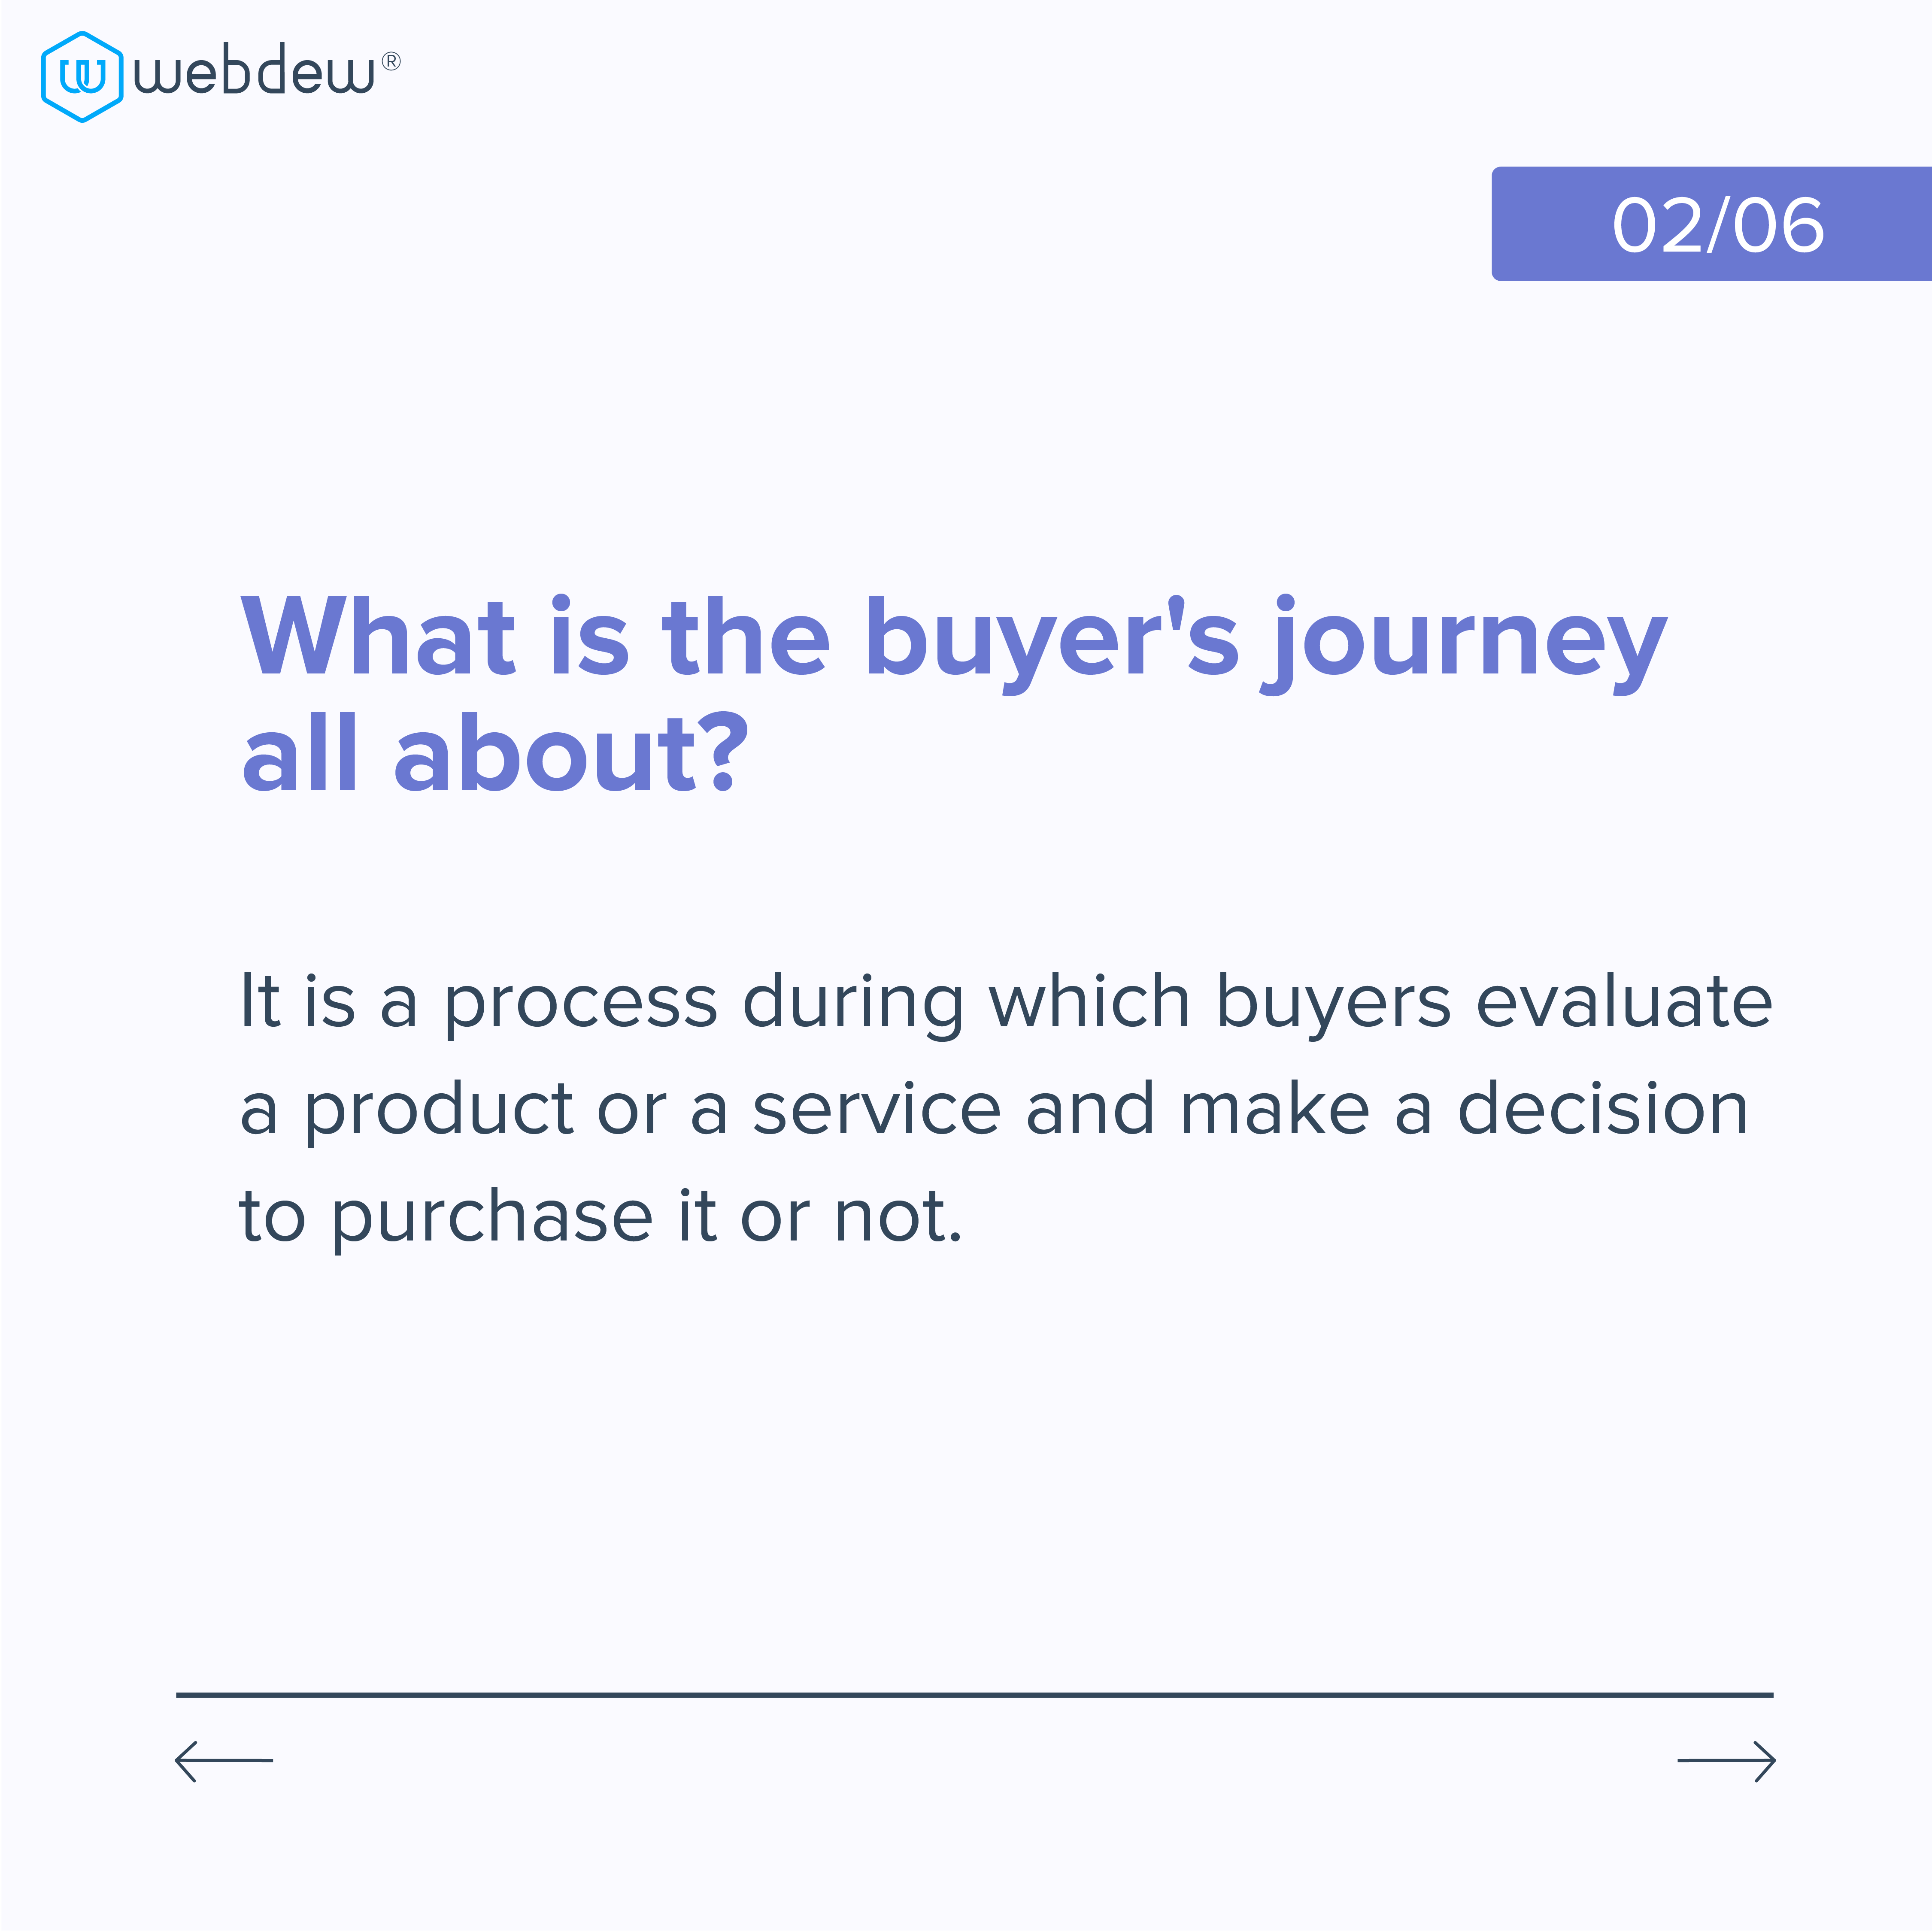 what-is-the-buyers-journey-all-about-1